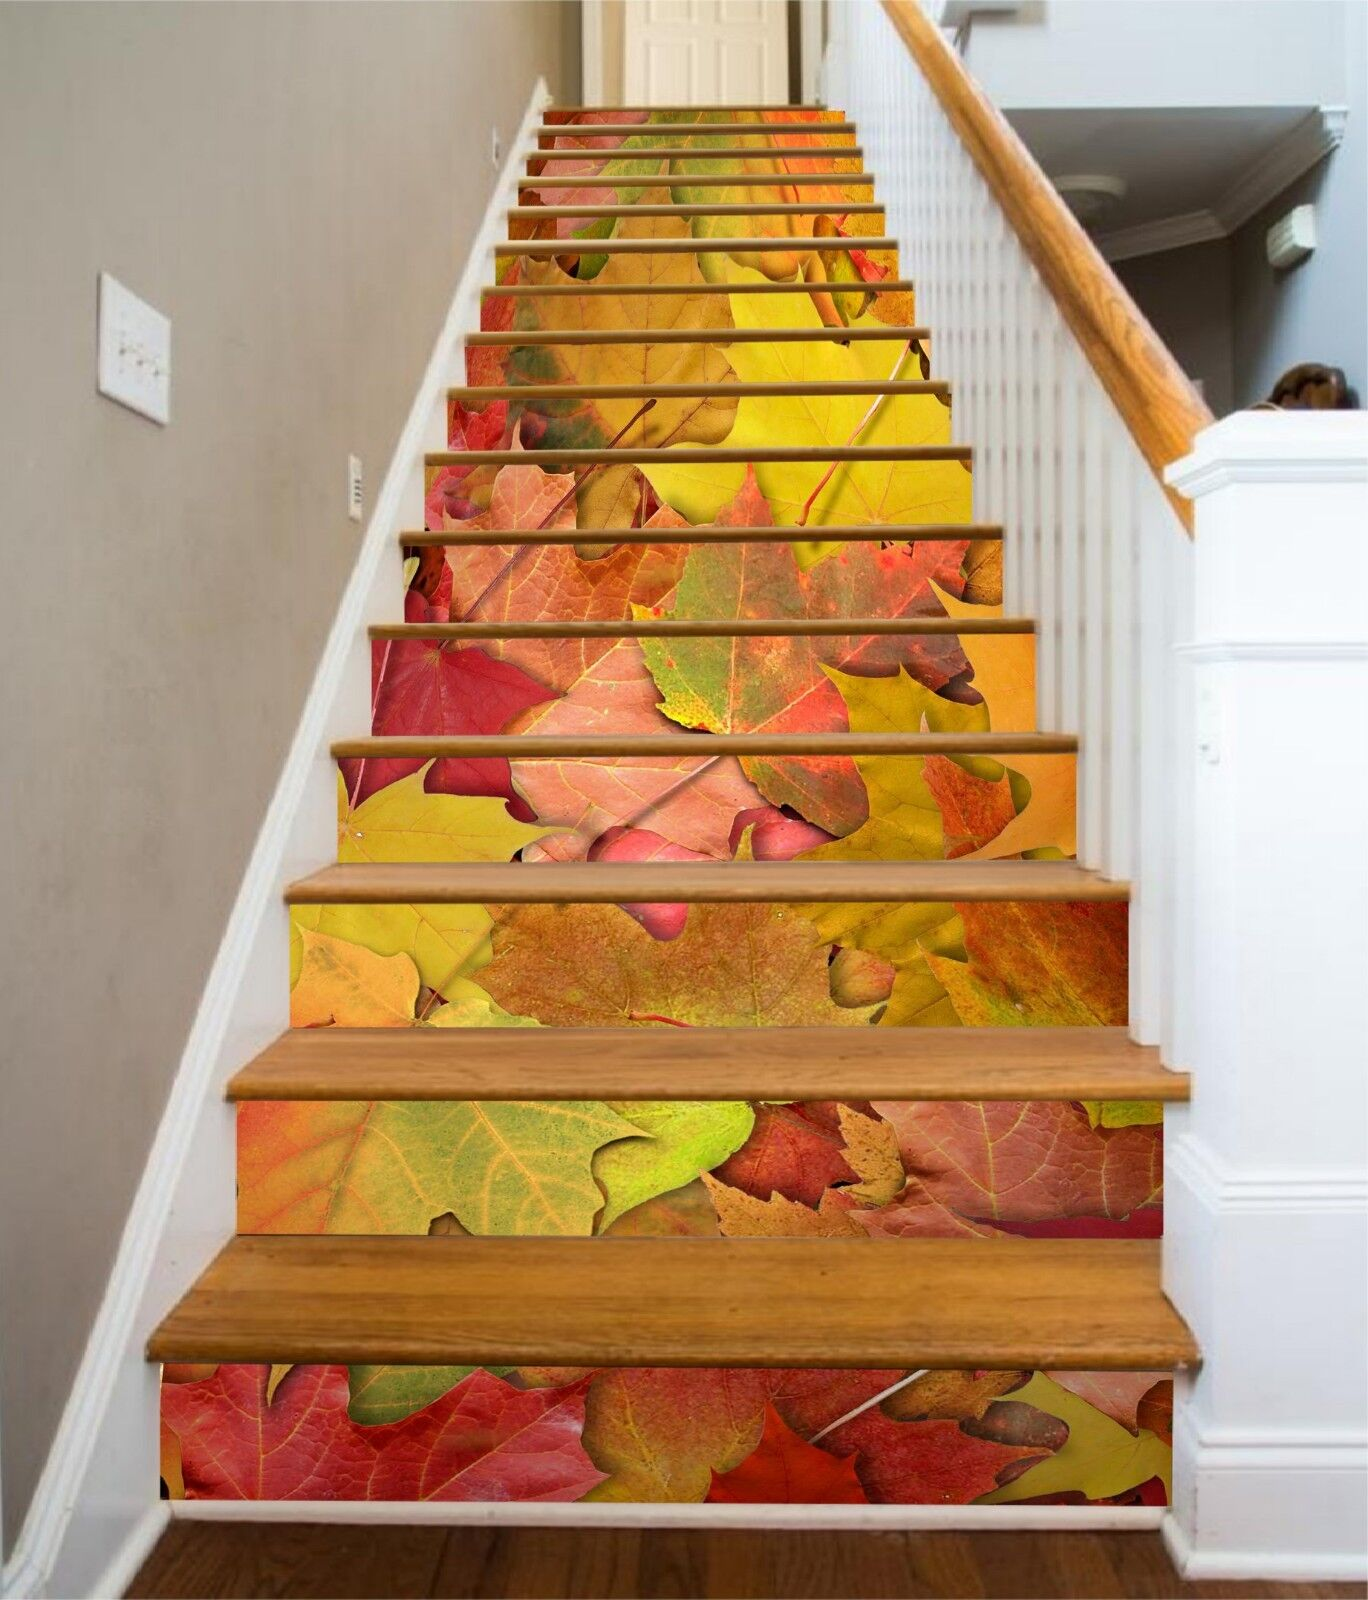 3D Leaves Pattern Stair Risers Decoration Photo Mural Vinyl Decal Wallpaper CA